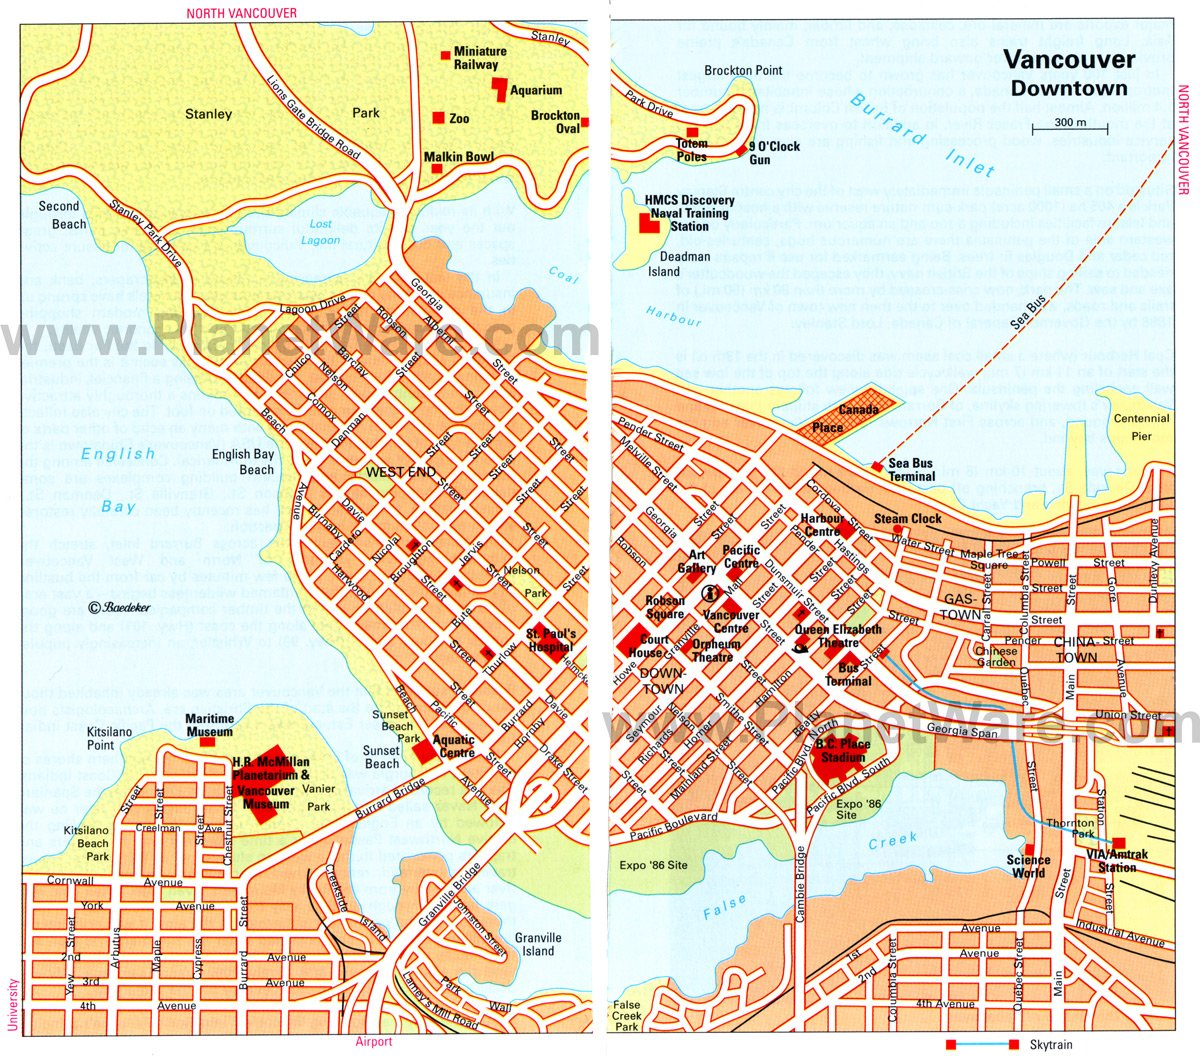 15 TopRated Tourist Attractions in Vancouver – Northern California Tourist Attractions Map